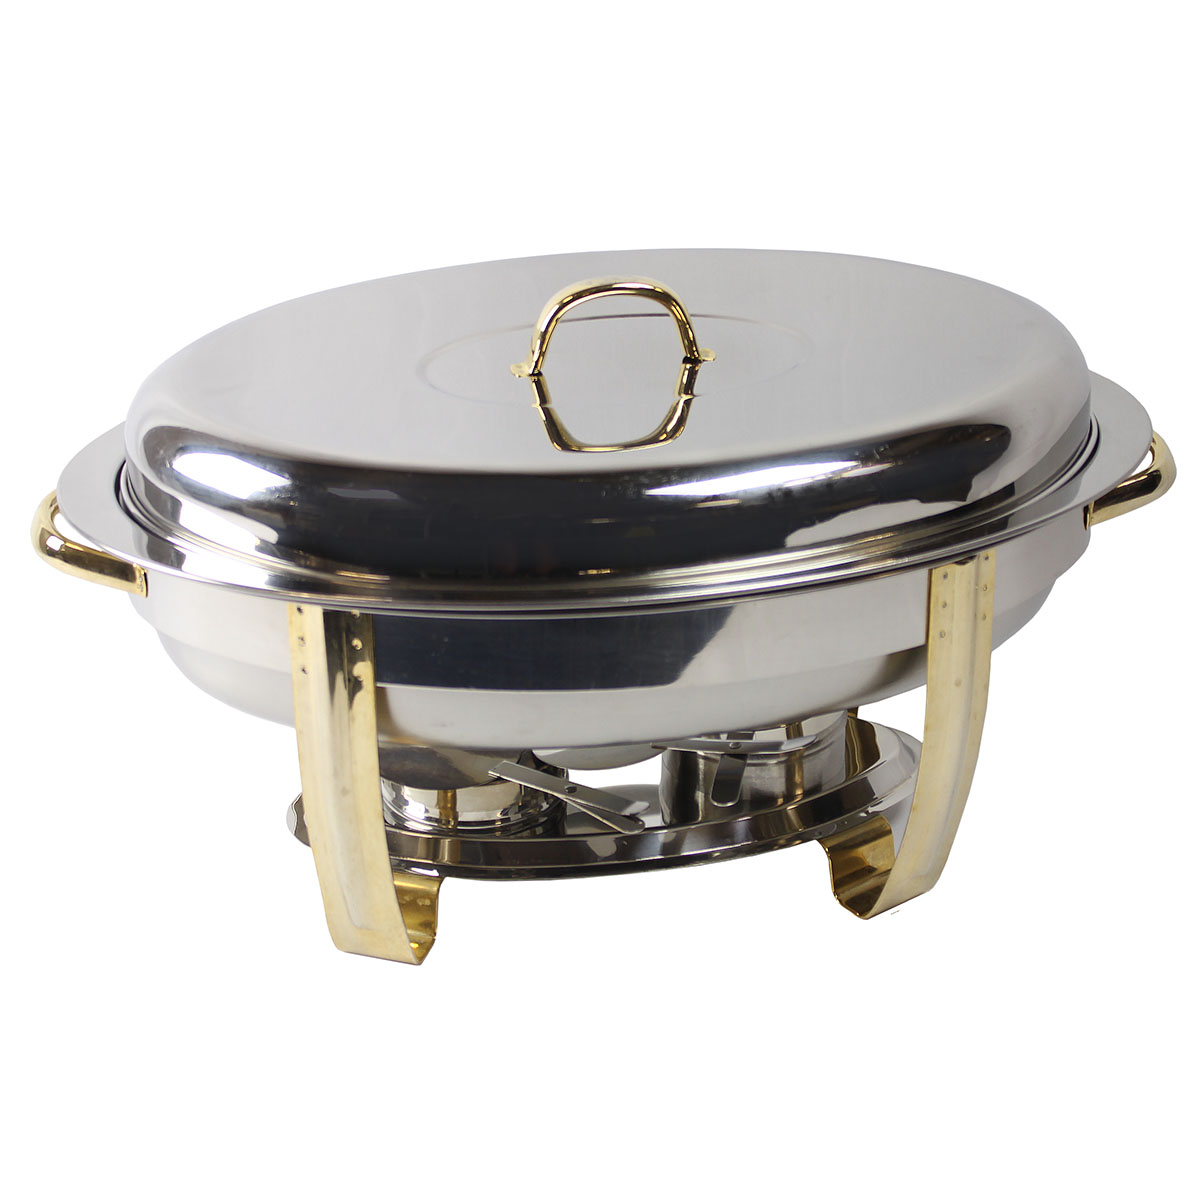 Chafer 6qt Oval with Brass Trim